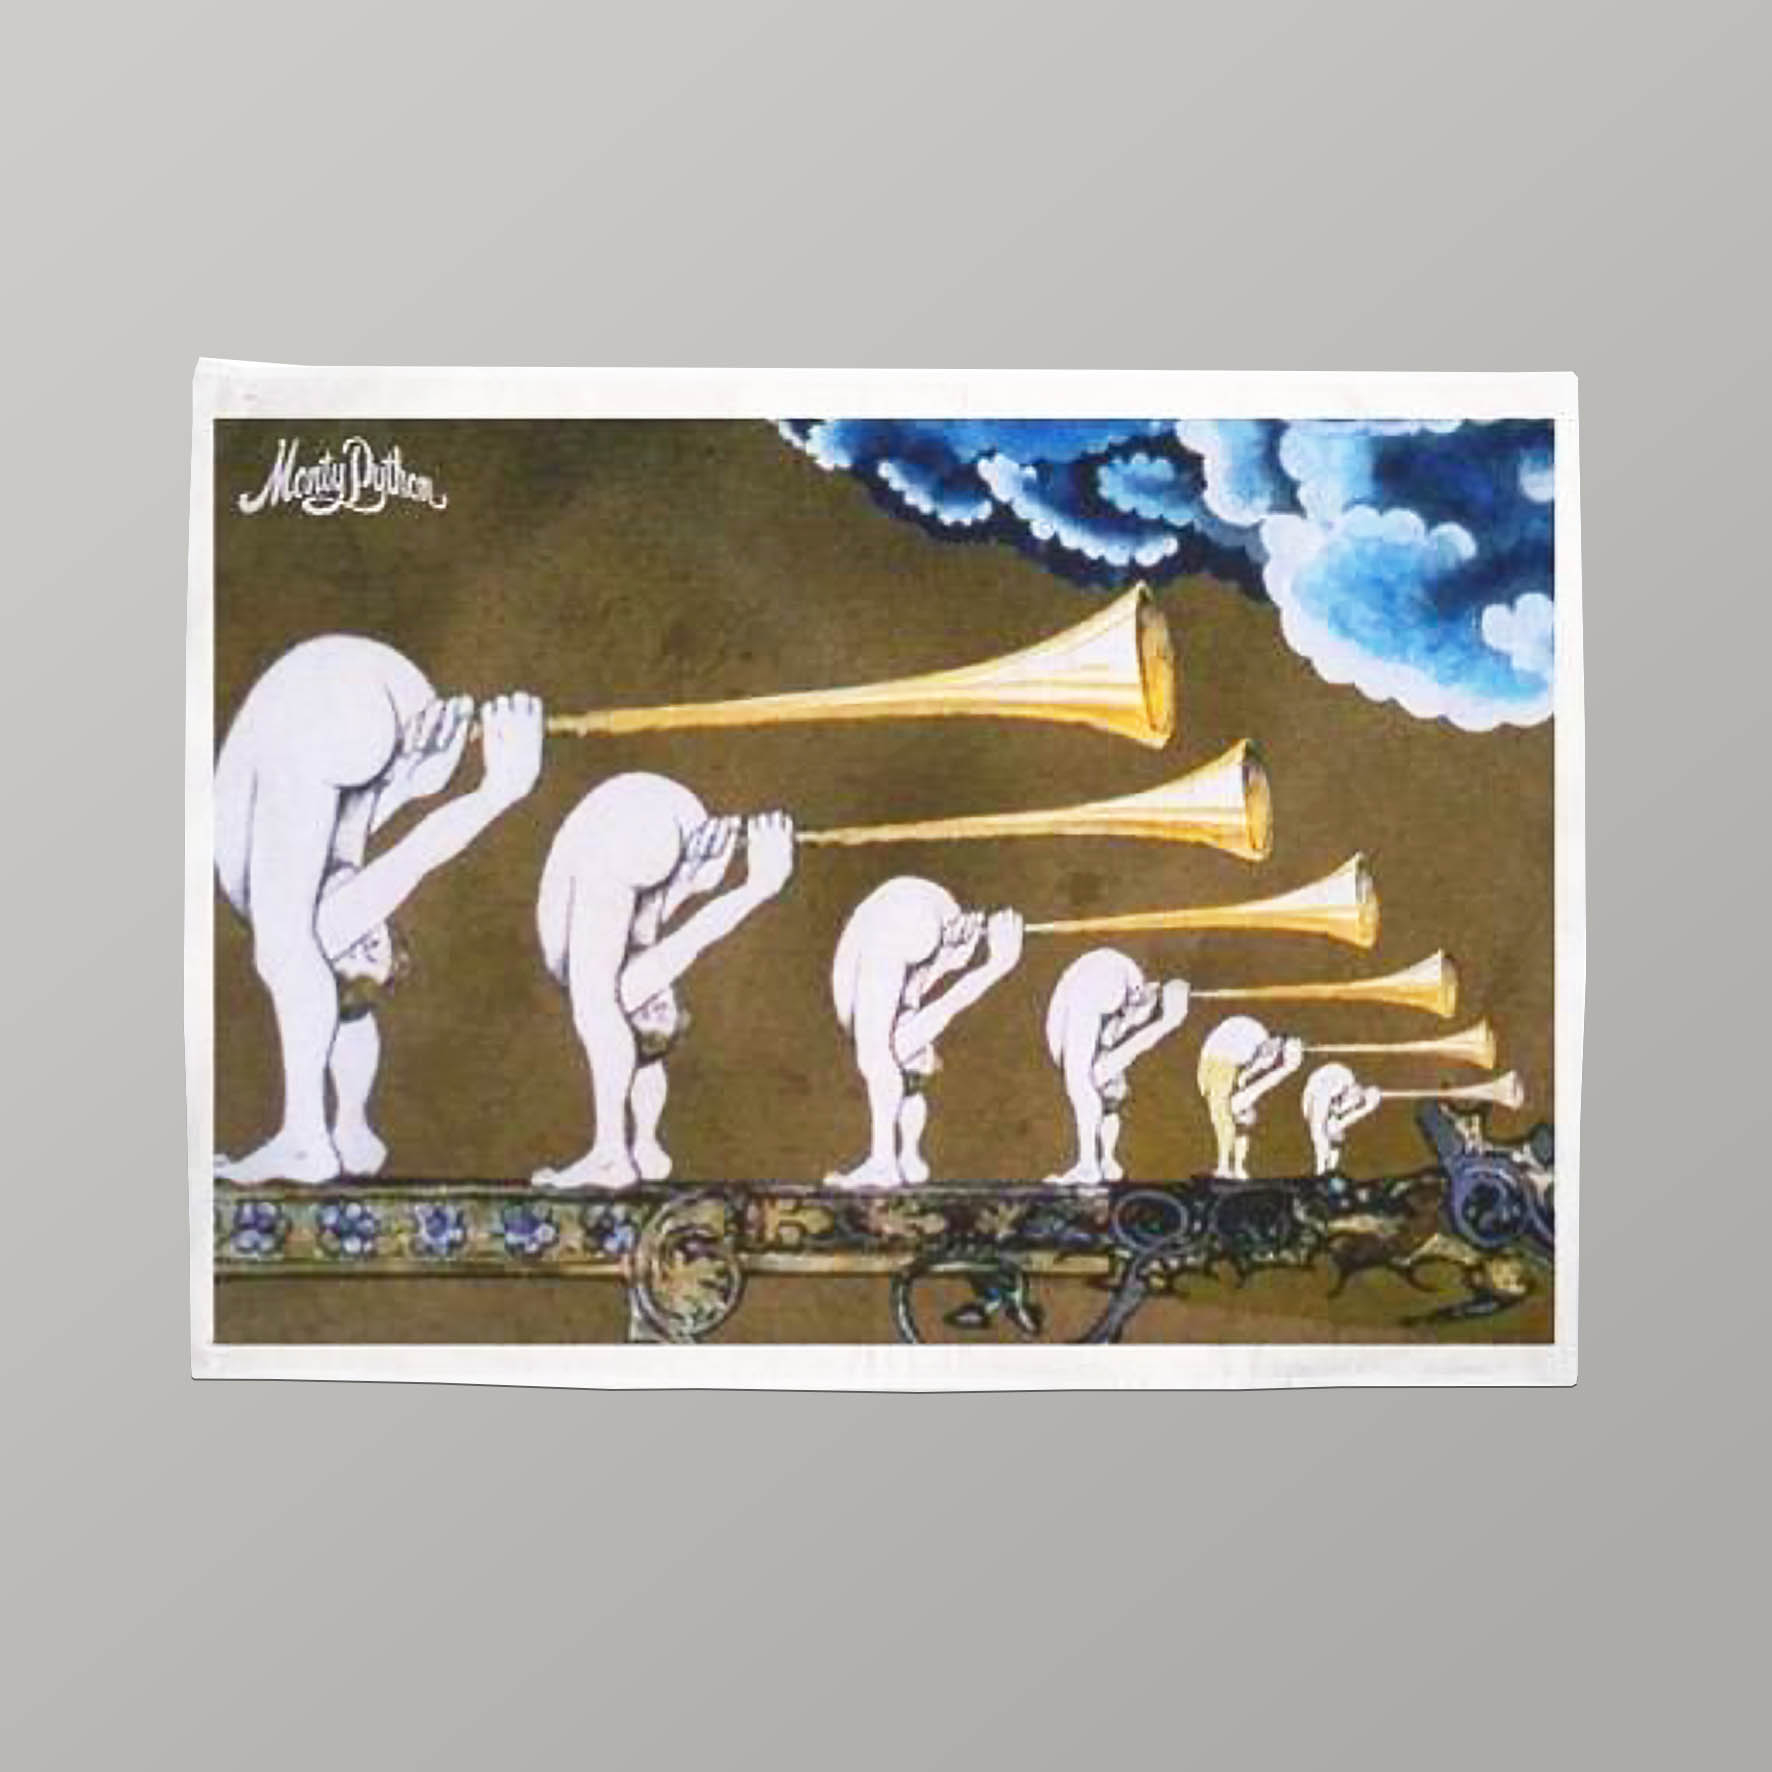 Buy Monty Python Tea Towel (Trumpets)